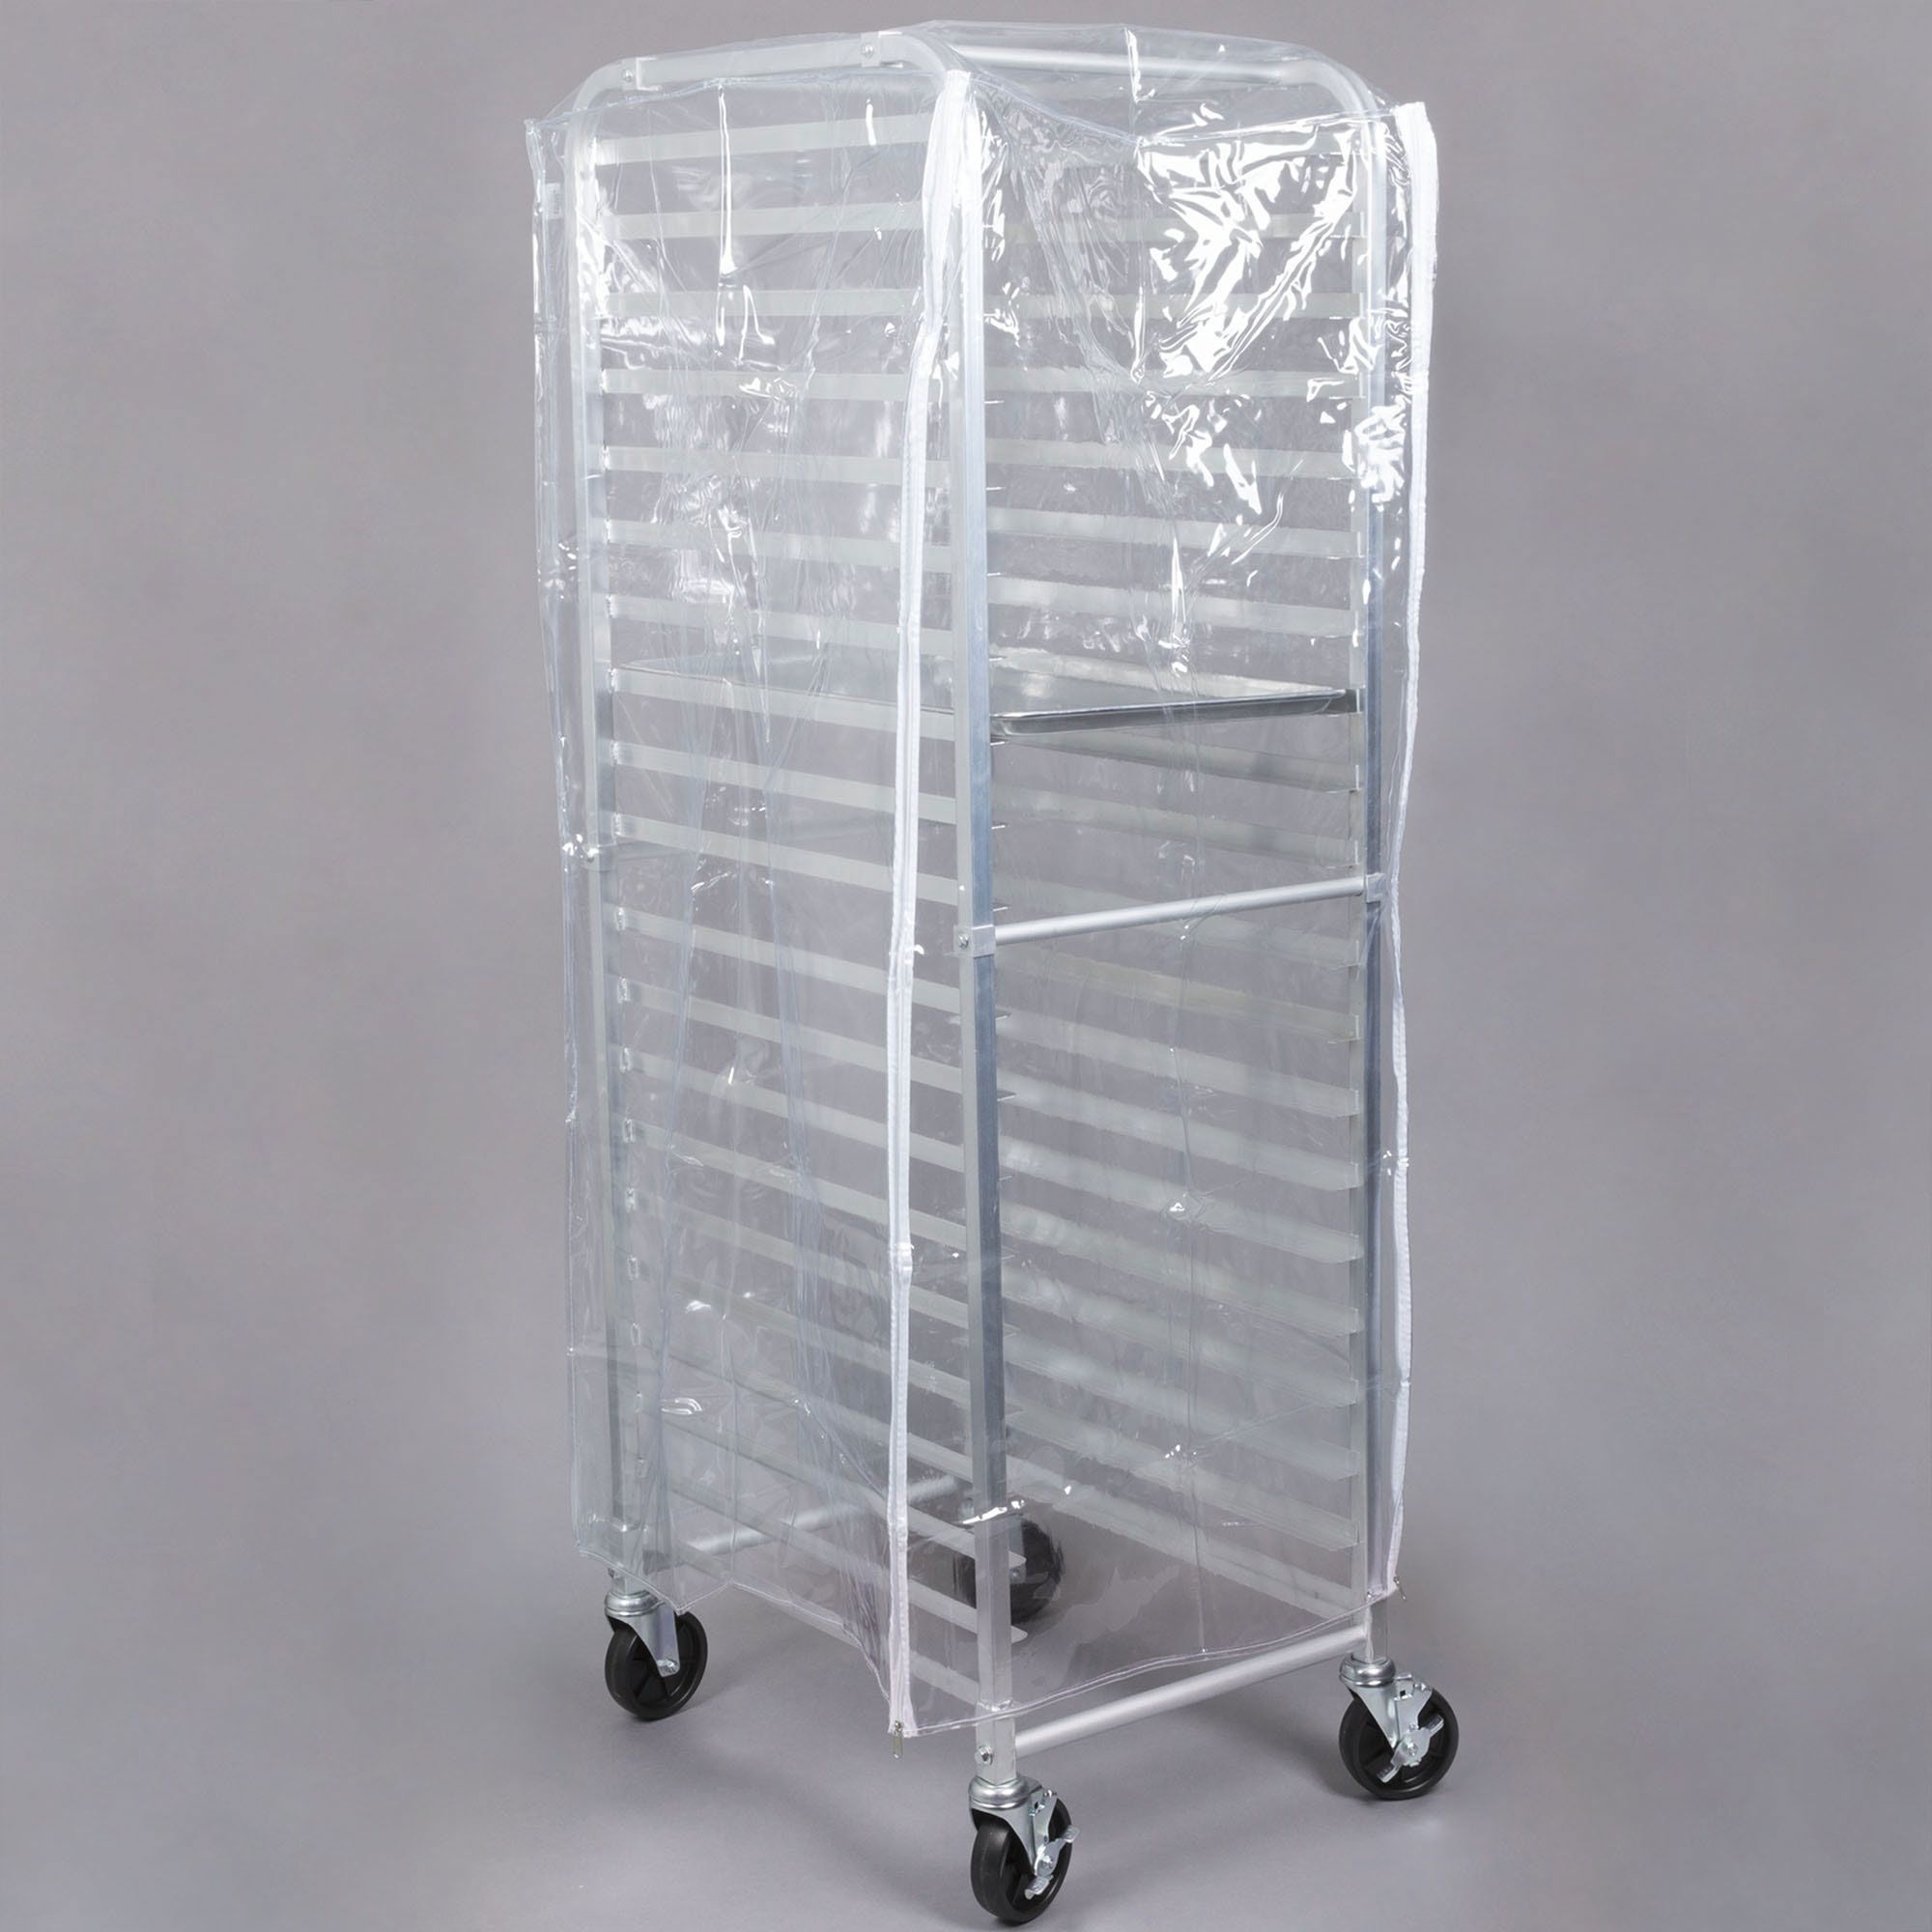 Pan Rack Cover 20 Tier Clear With Images Pan Rack Bakery